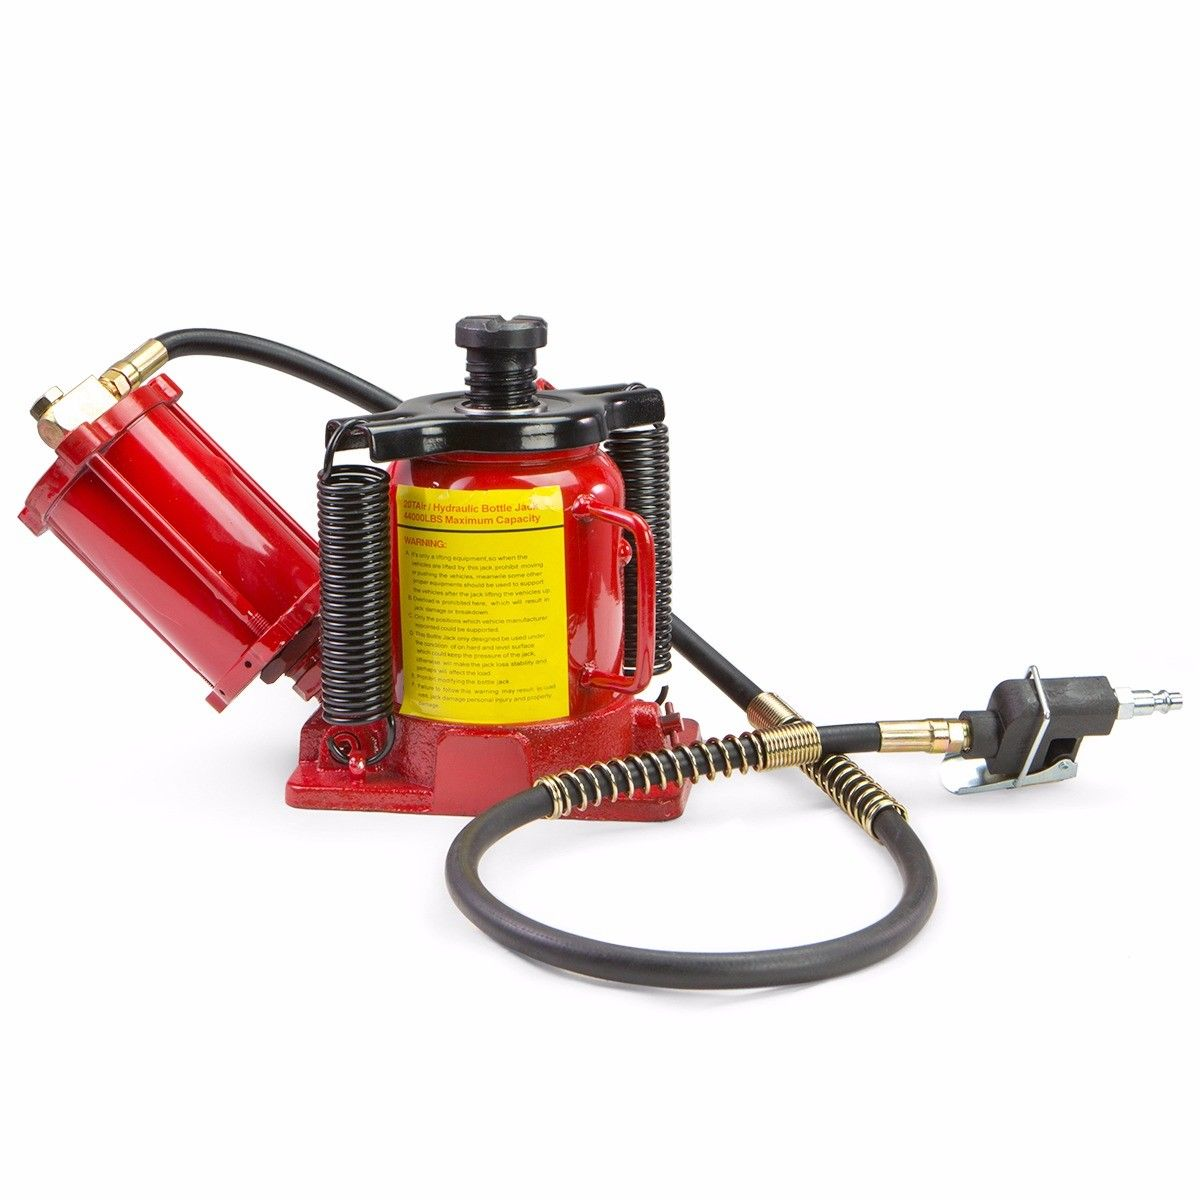 Stark Hydraulic 20 Ton Air Bottle Air-Operated Bottle Jack Lift Portable Low Profile Manual Jack Air Jack with Handle